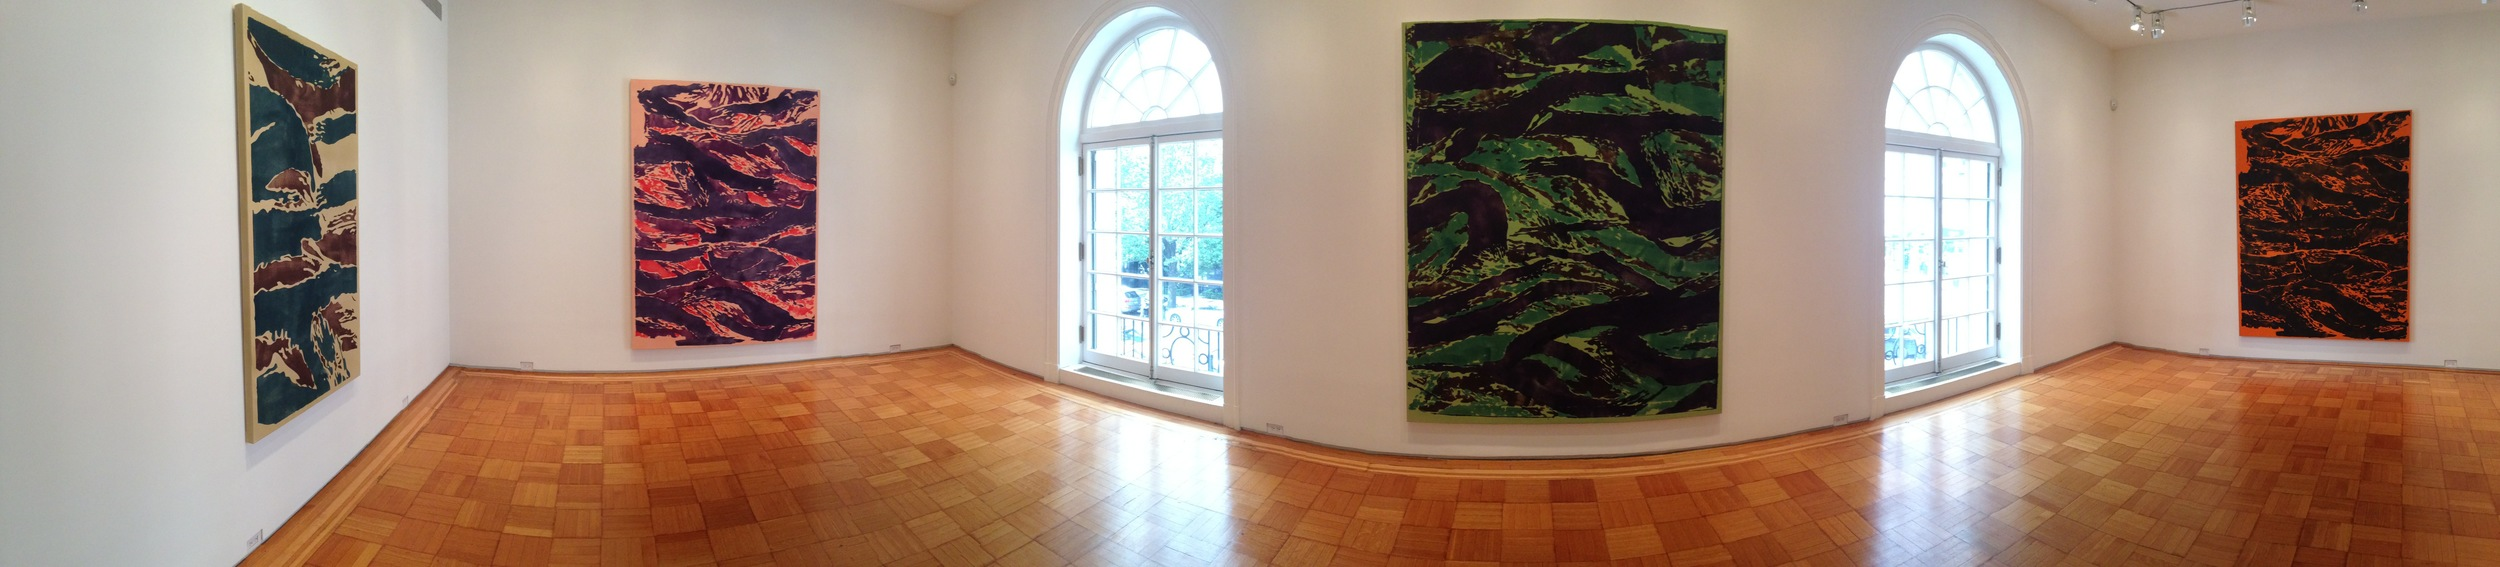 Exhibition Image,  Tigris  ,  Skarstedt Gallery, New York Photo Credit: Cincala Art Advisory